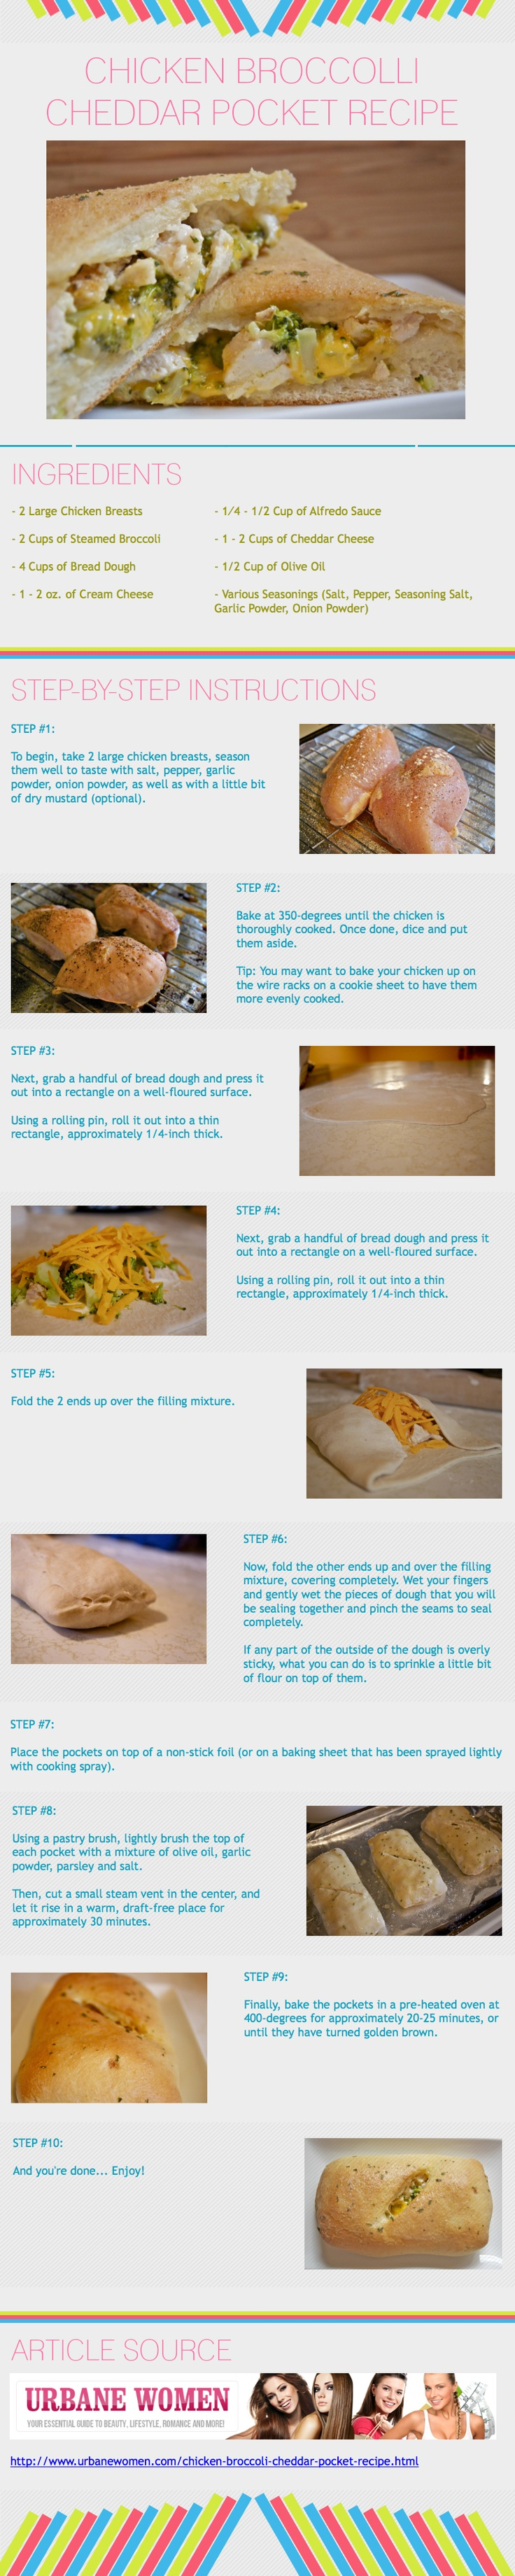 chicken broccoli pocket recipe.jpg